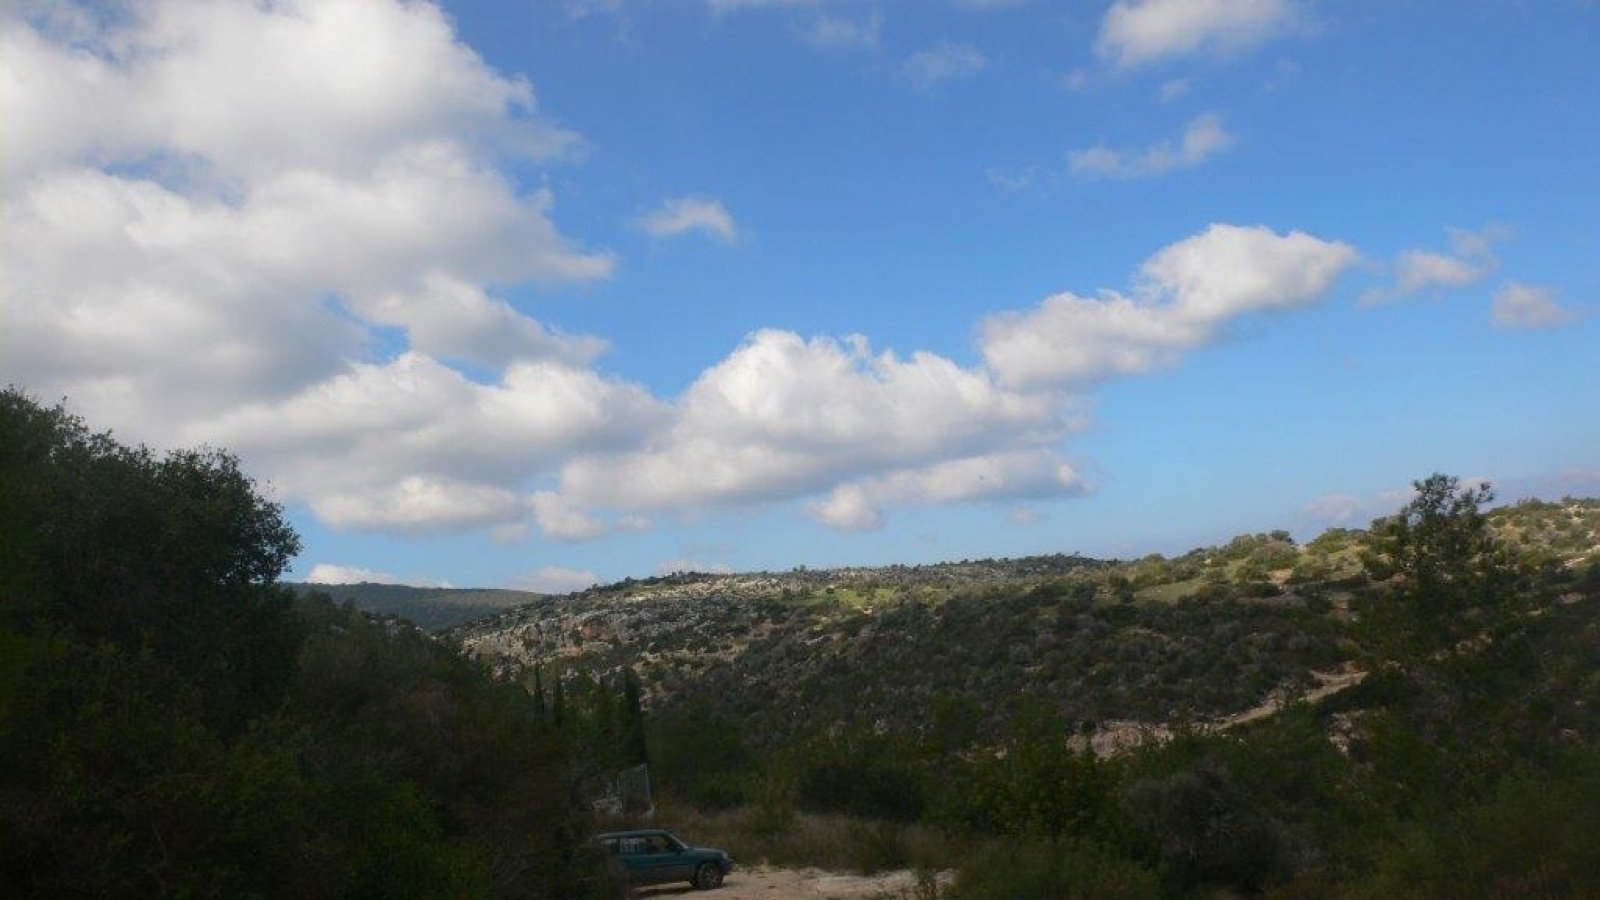 Commercial Land - Neo Chorio Residential Lnd